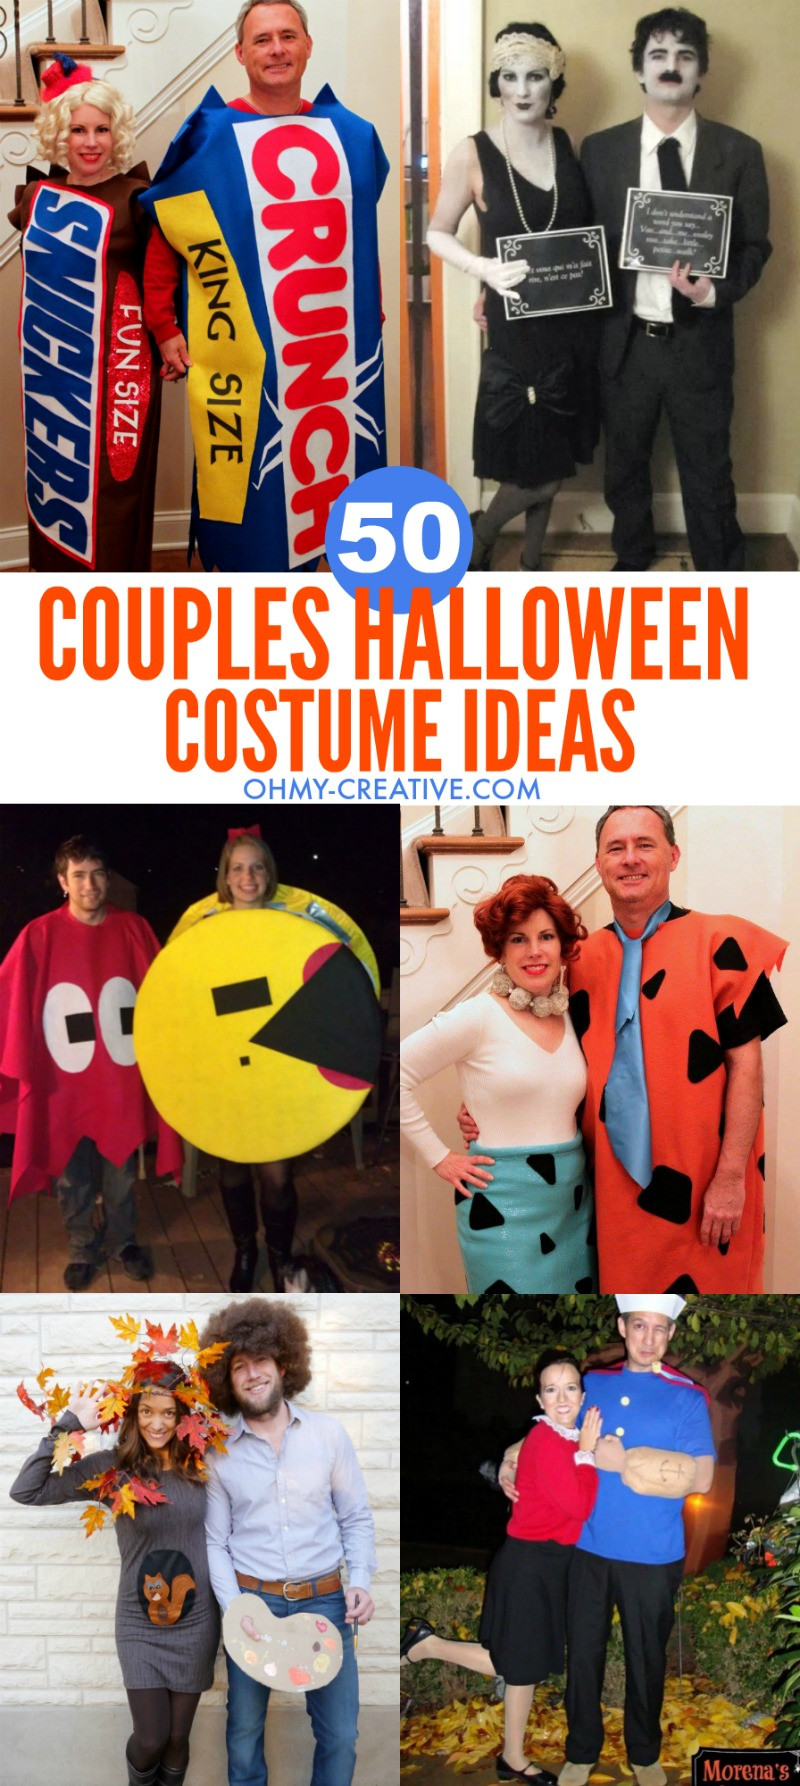 Creative DIY Halloween Costumes For Adults  50 Couples Halloween Costume Ideas Oh My Creative